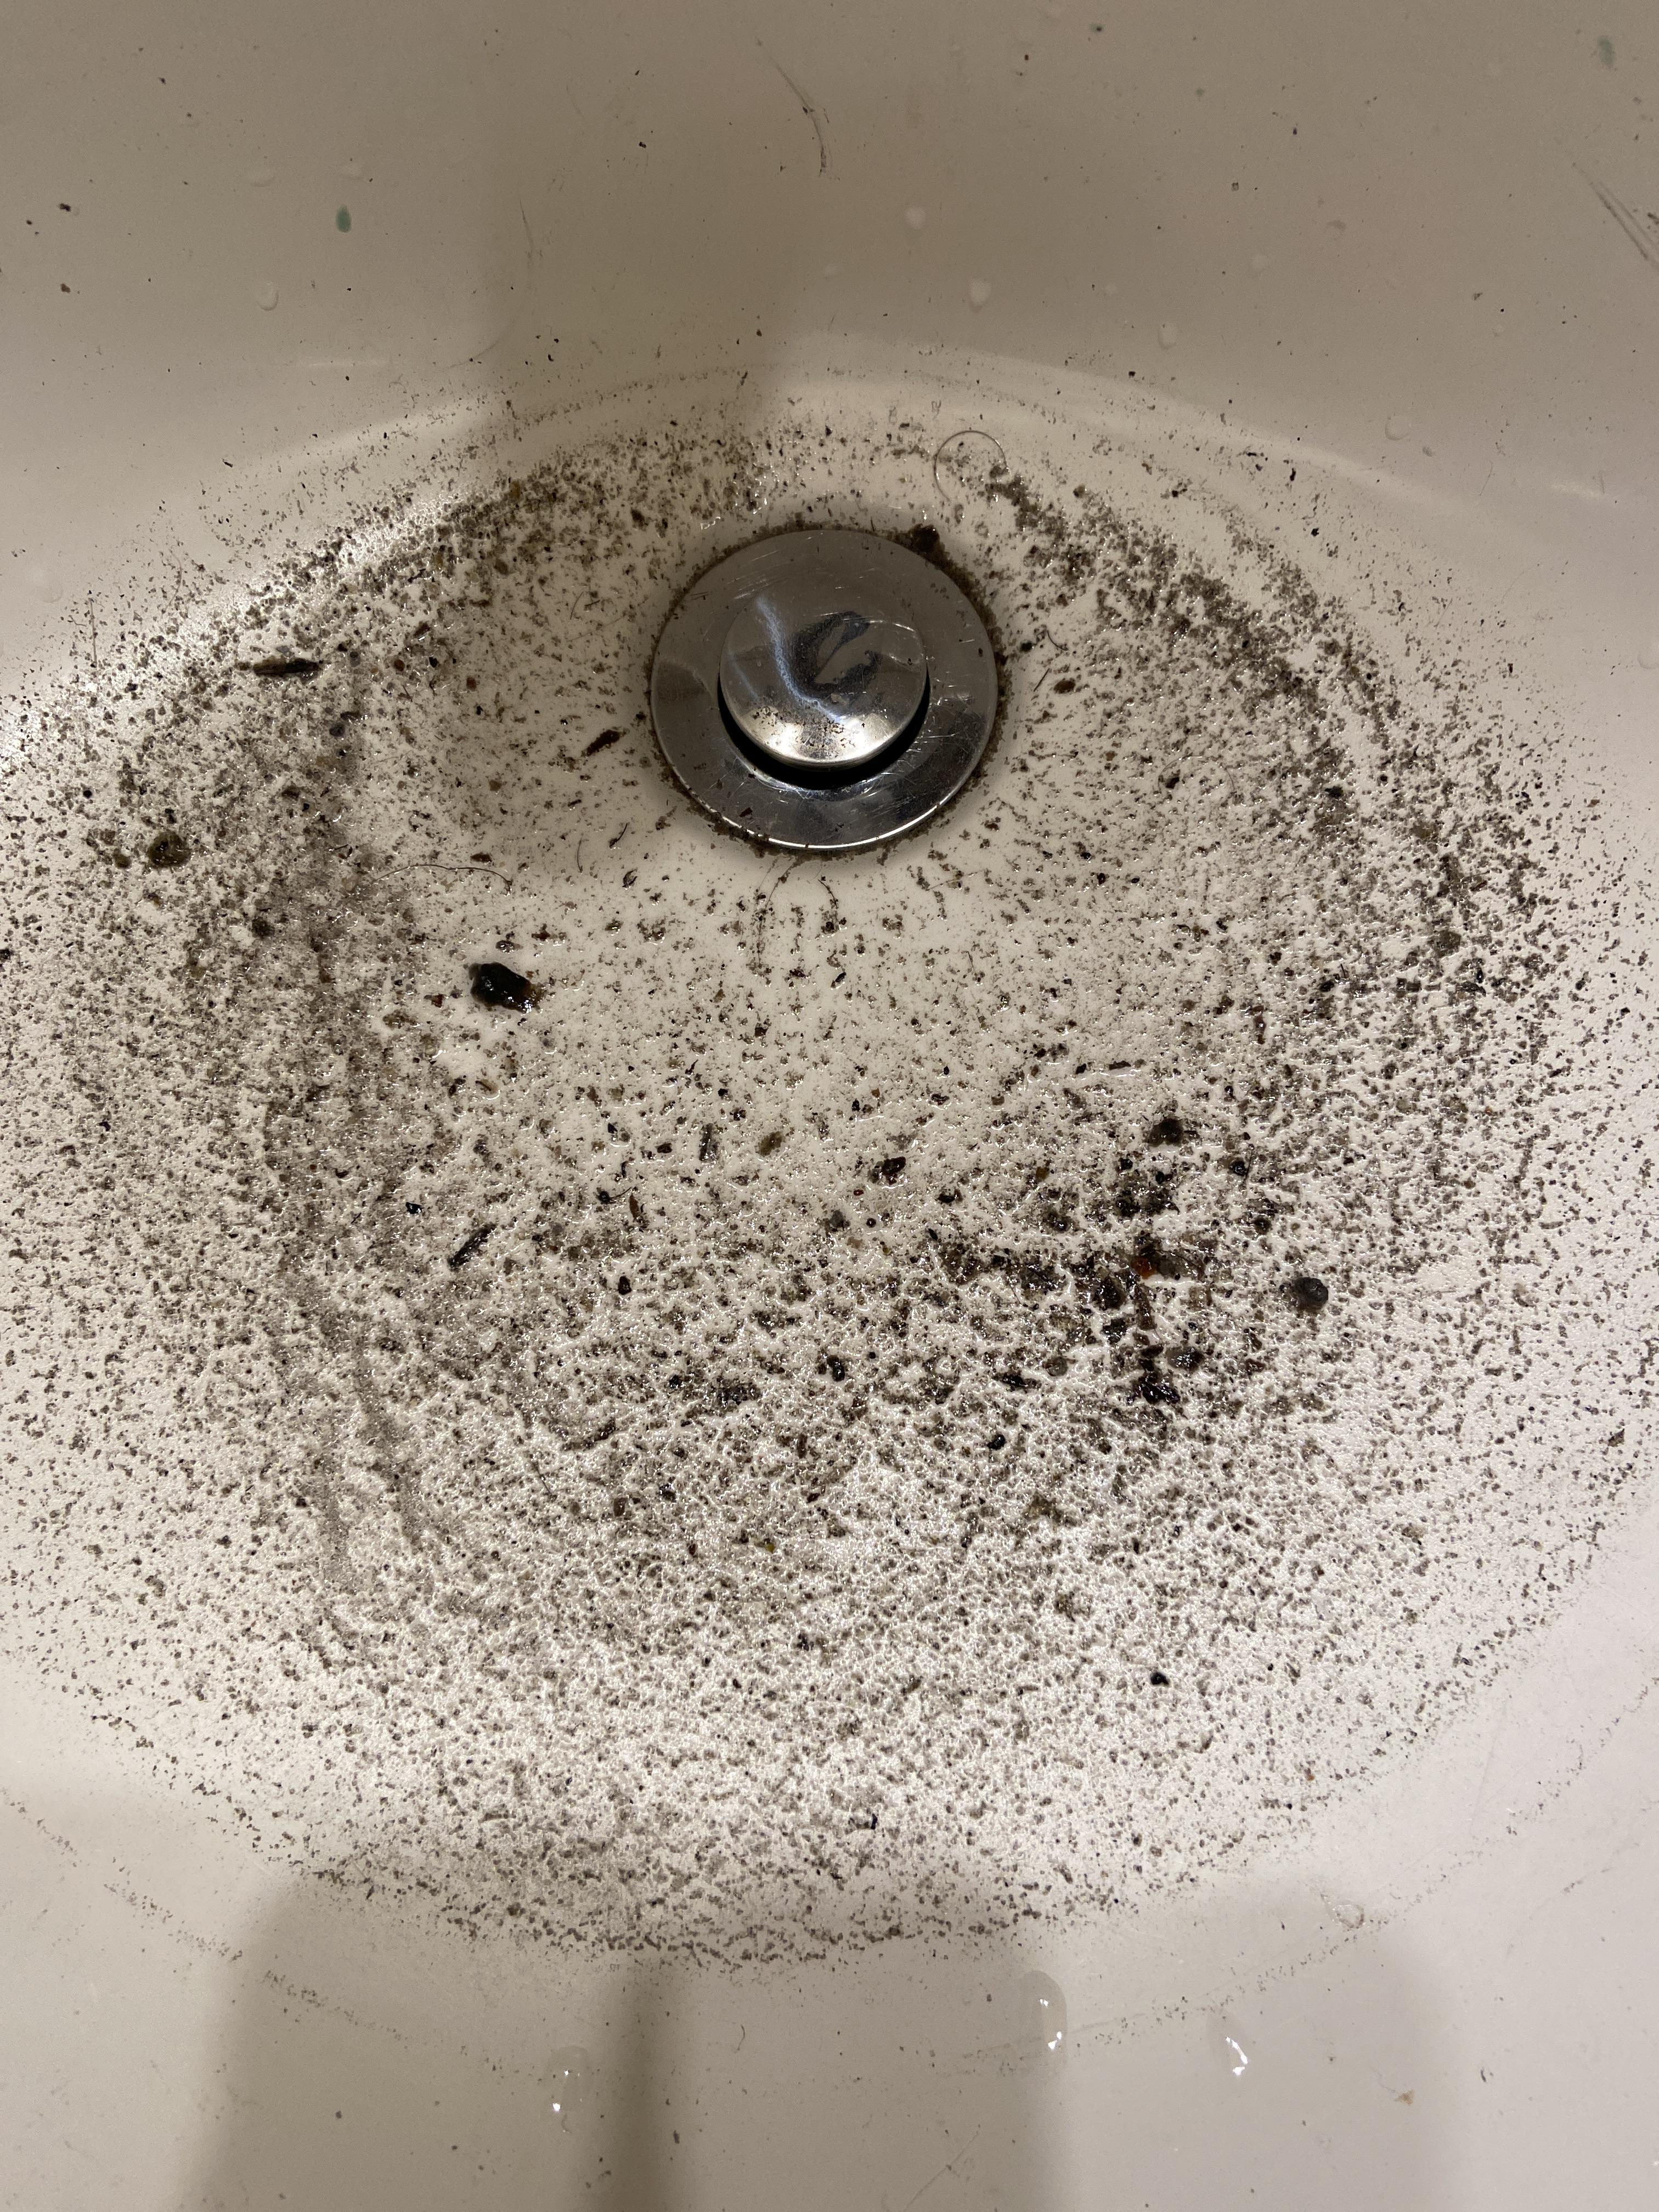 black stuff coming out of sink slowly